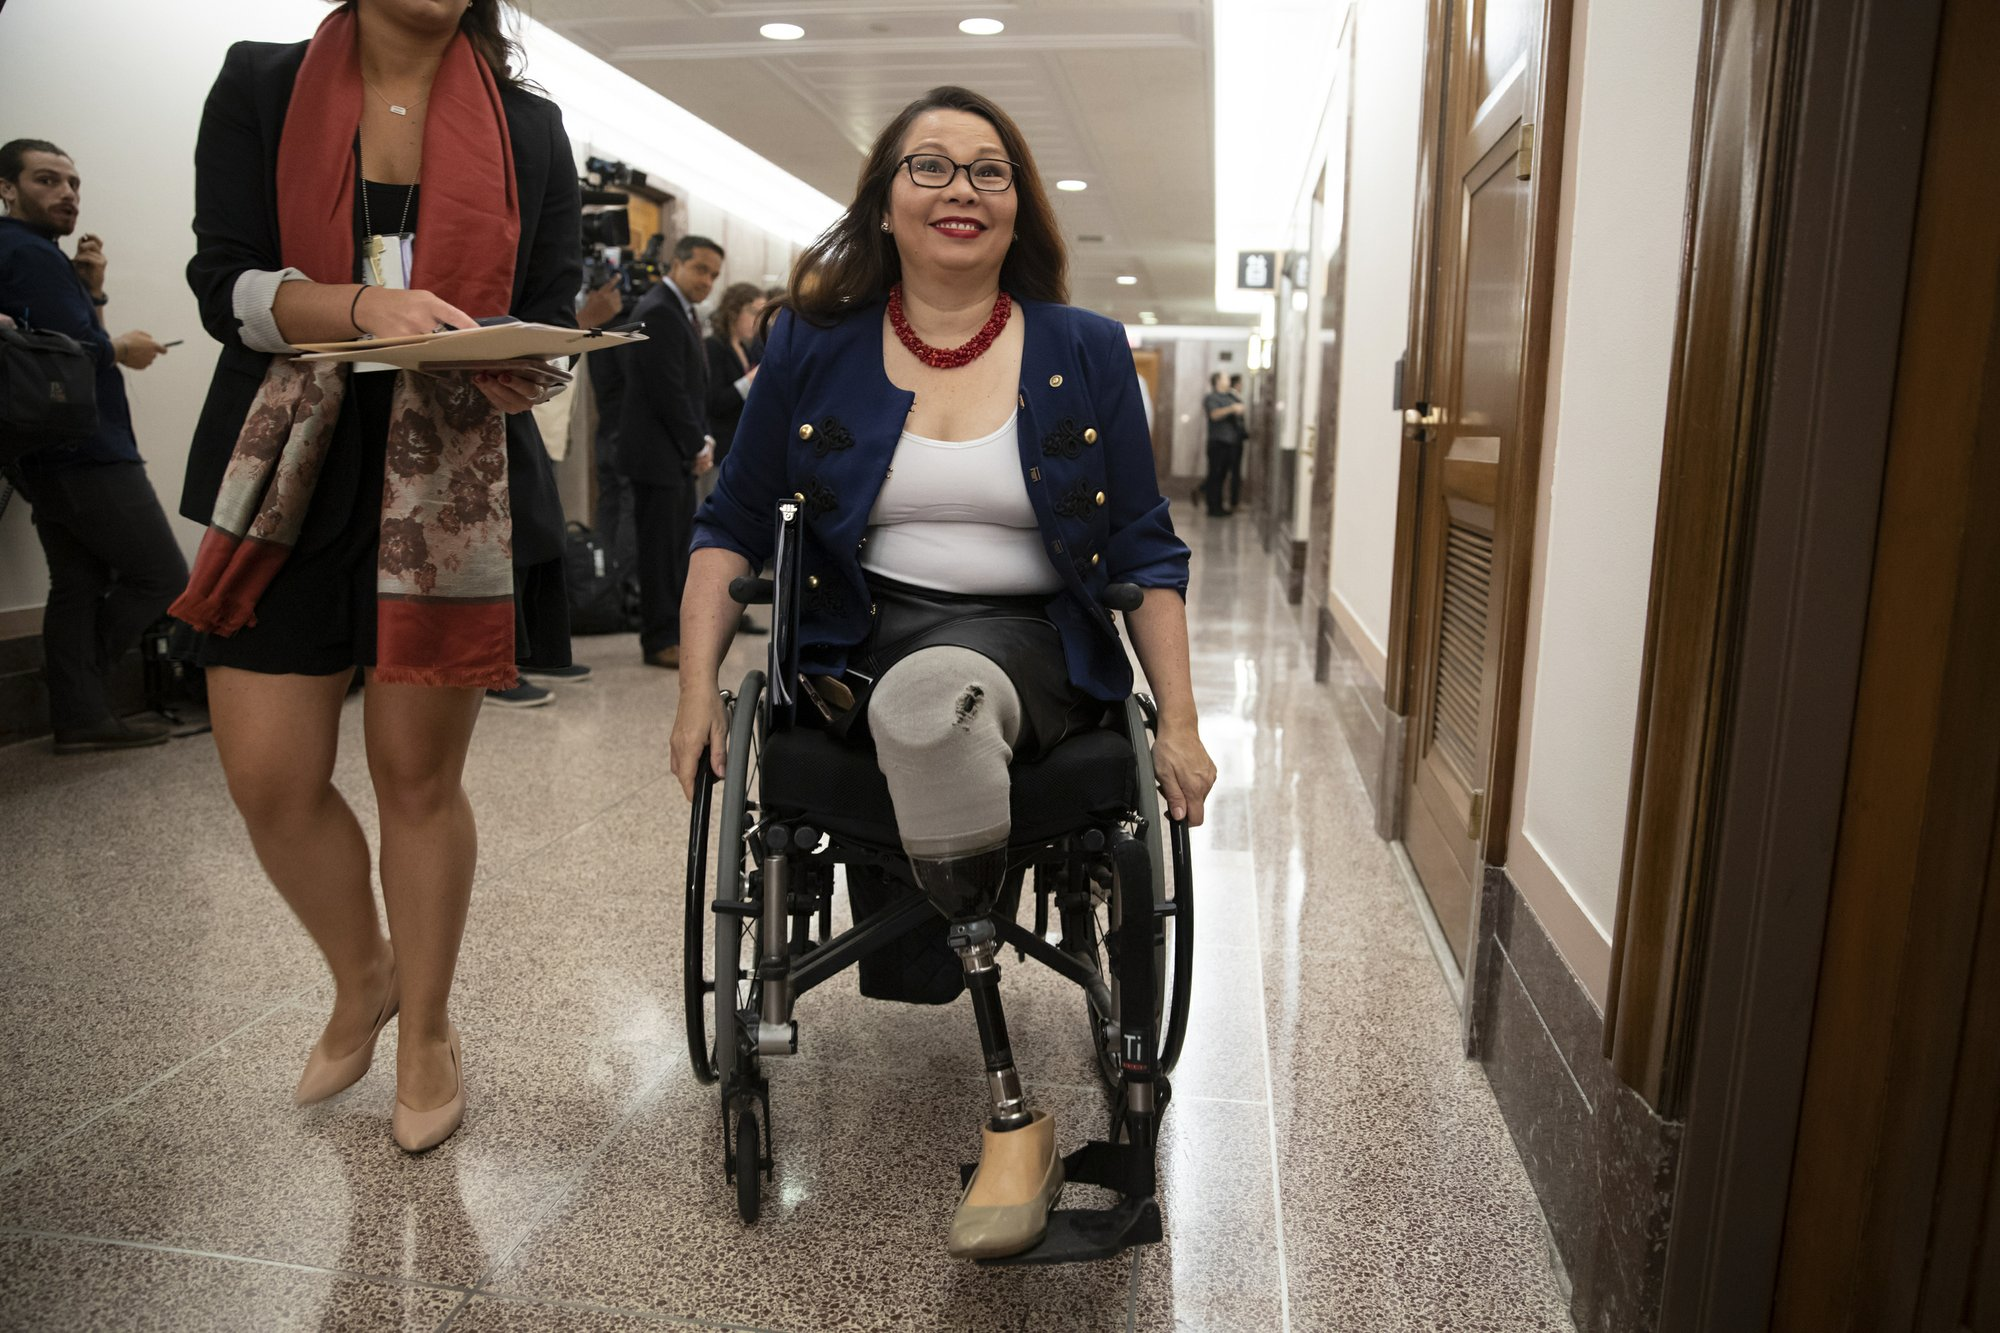 Duckworth returns to Iraq for 1st time since being shot down